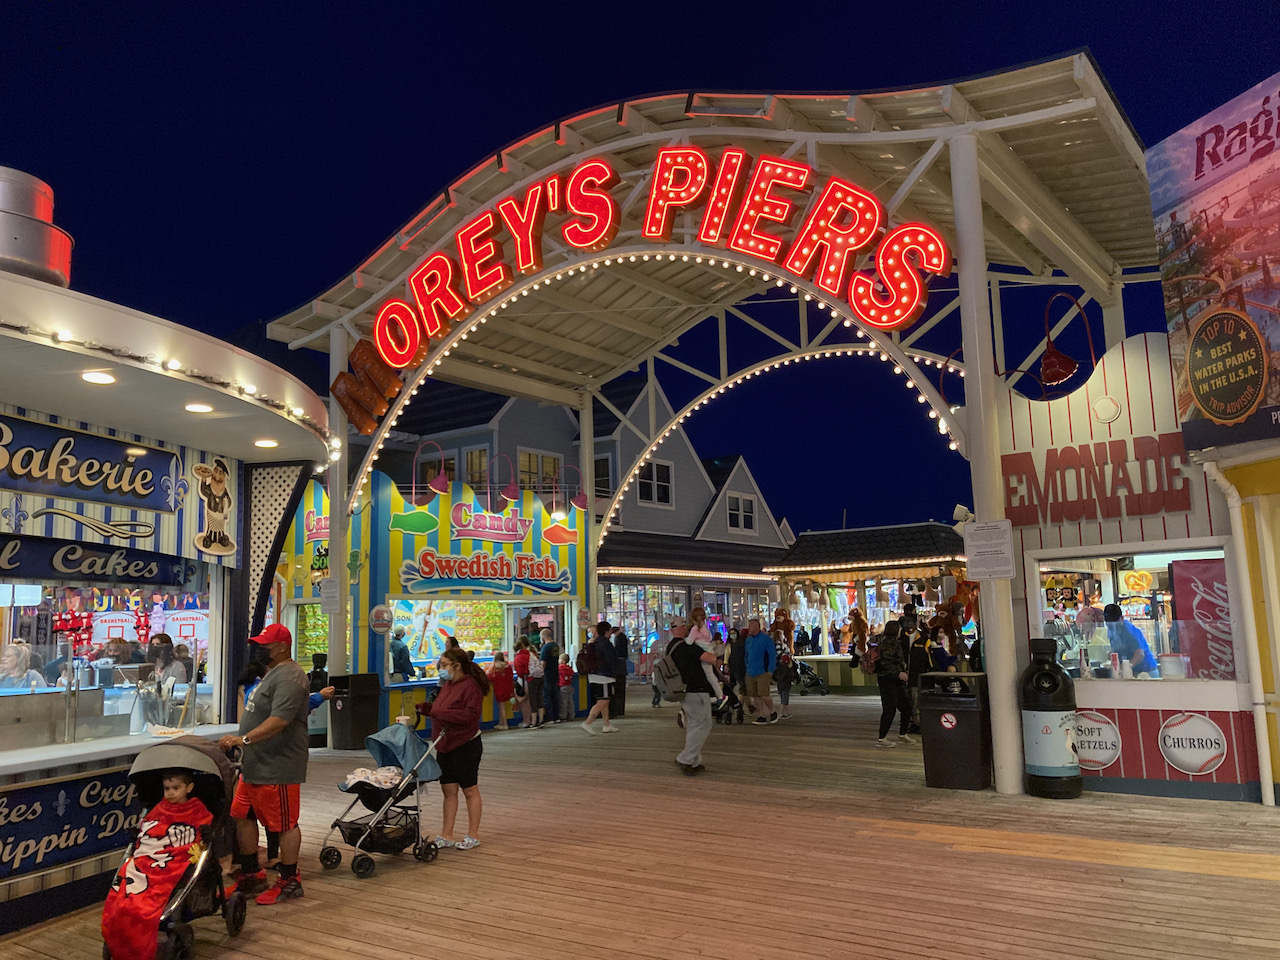 Entrance to Morey's Piers.